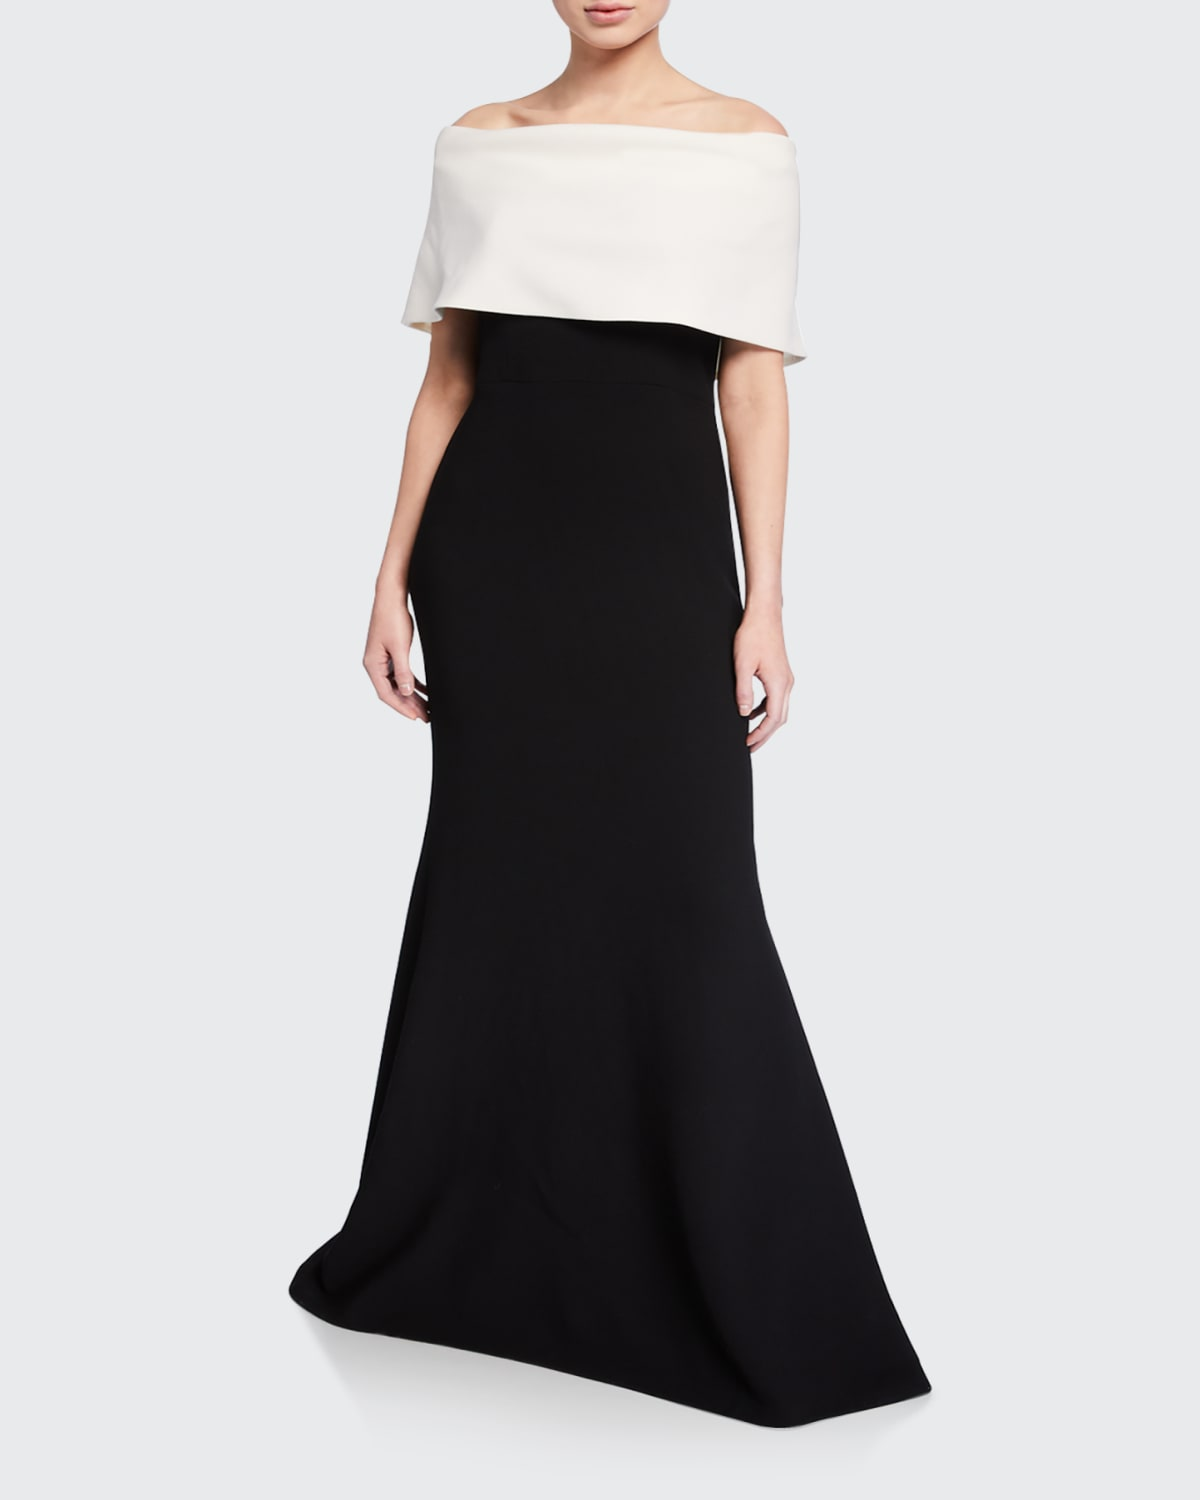 Off-the-Shoulder Two-Tone Gown